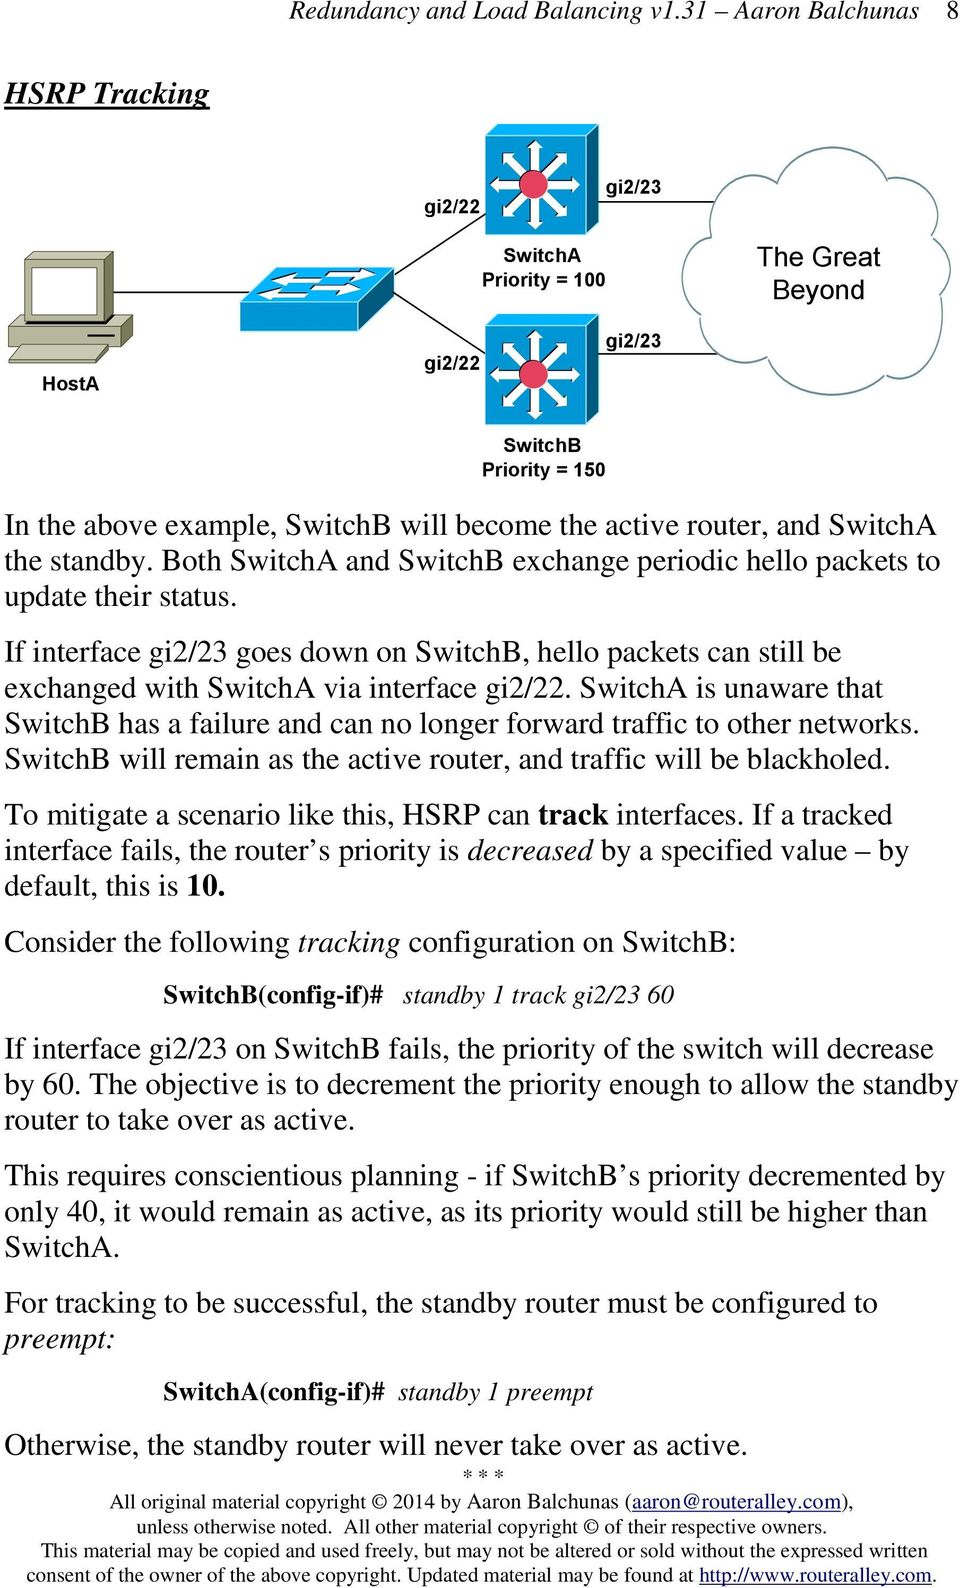 SwitchA is unaware that SwitchB has a failure and can no longer forward traffic to other networks. SwitchB will remain as the active router, and traffic will be blackholed.